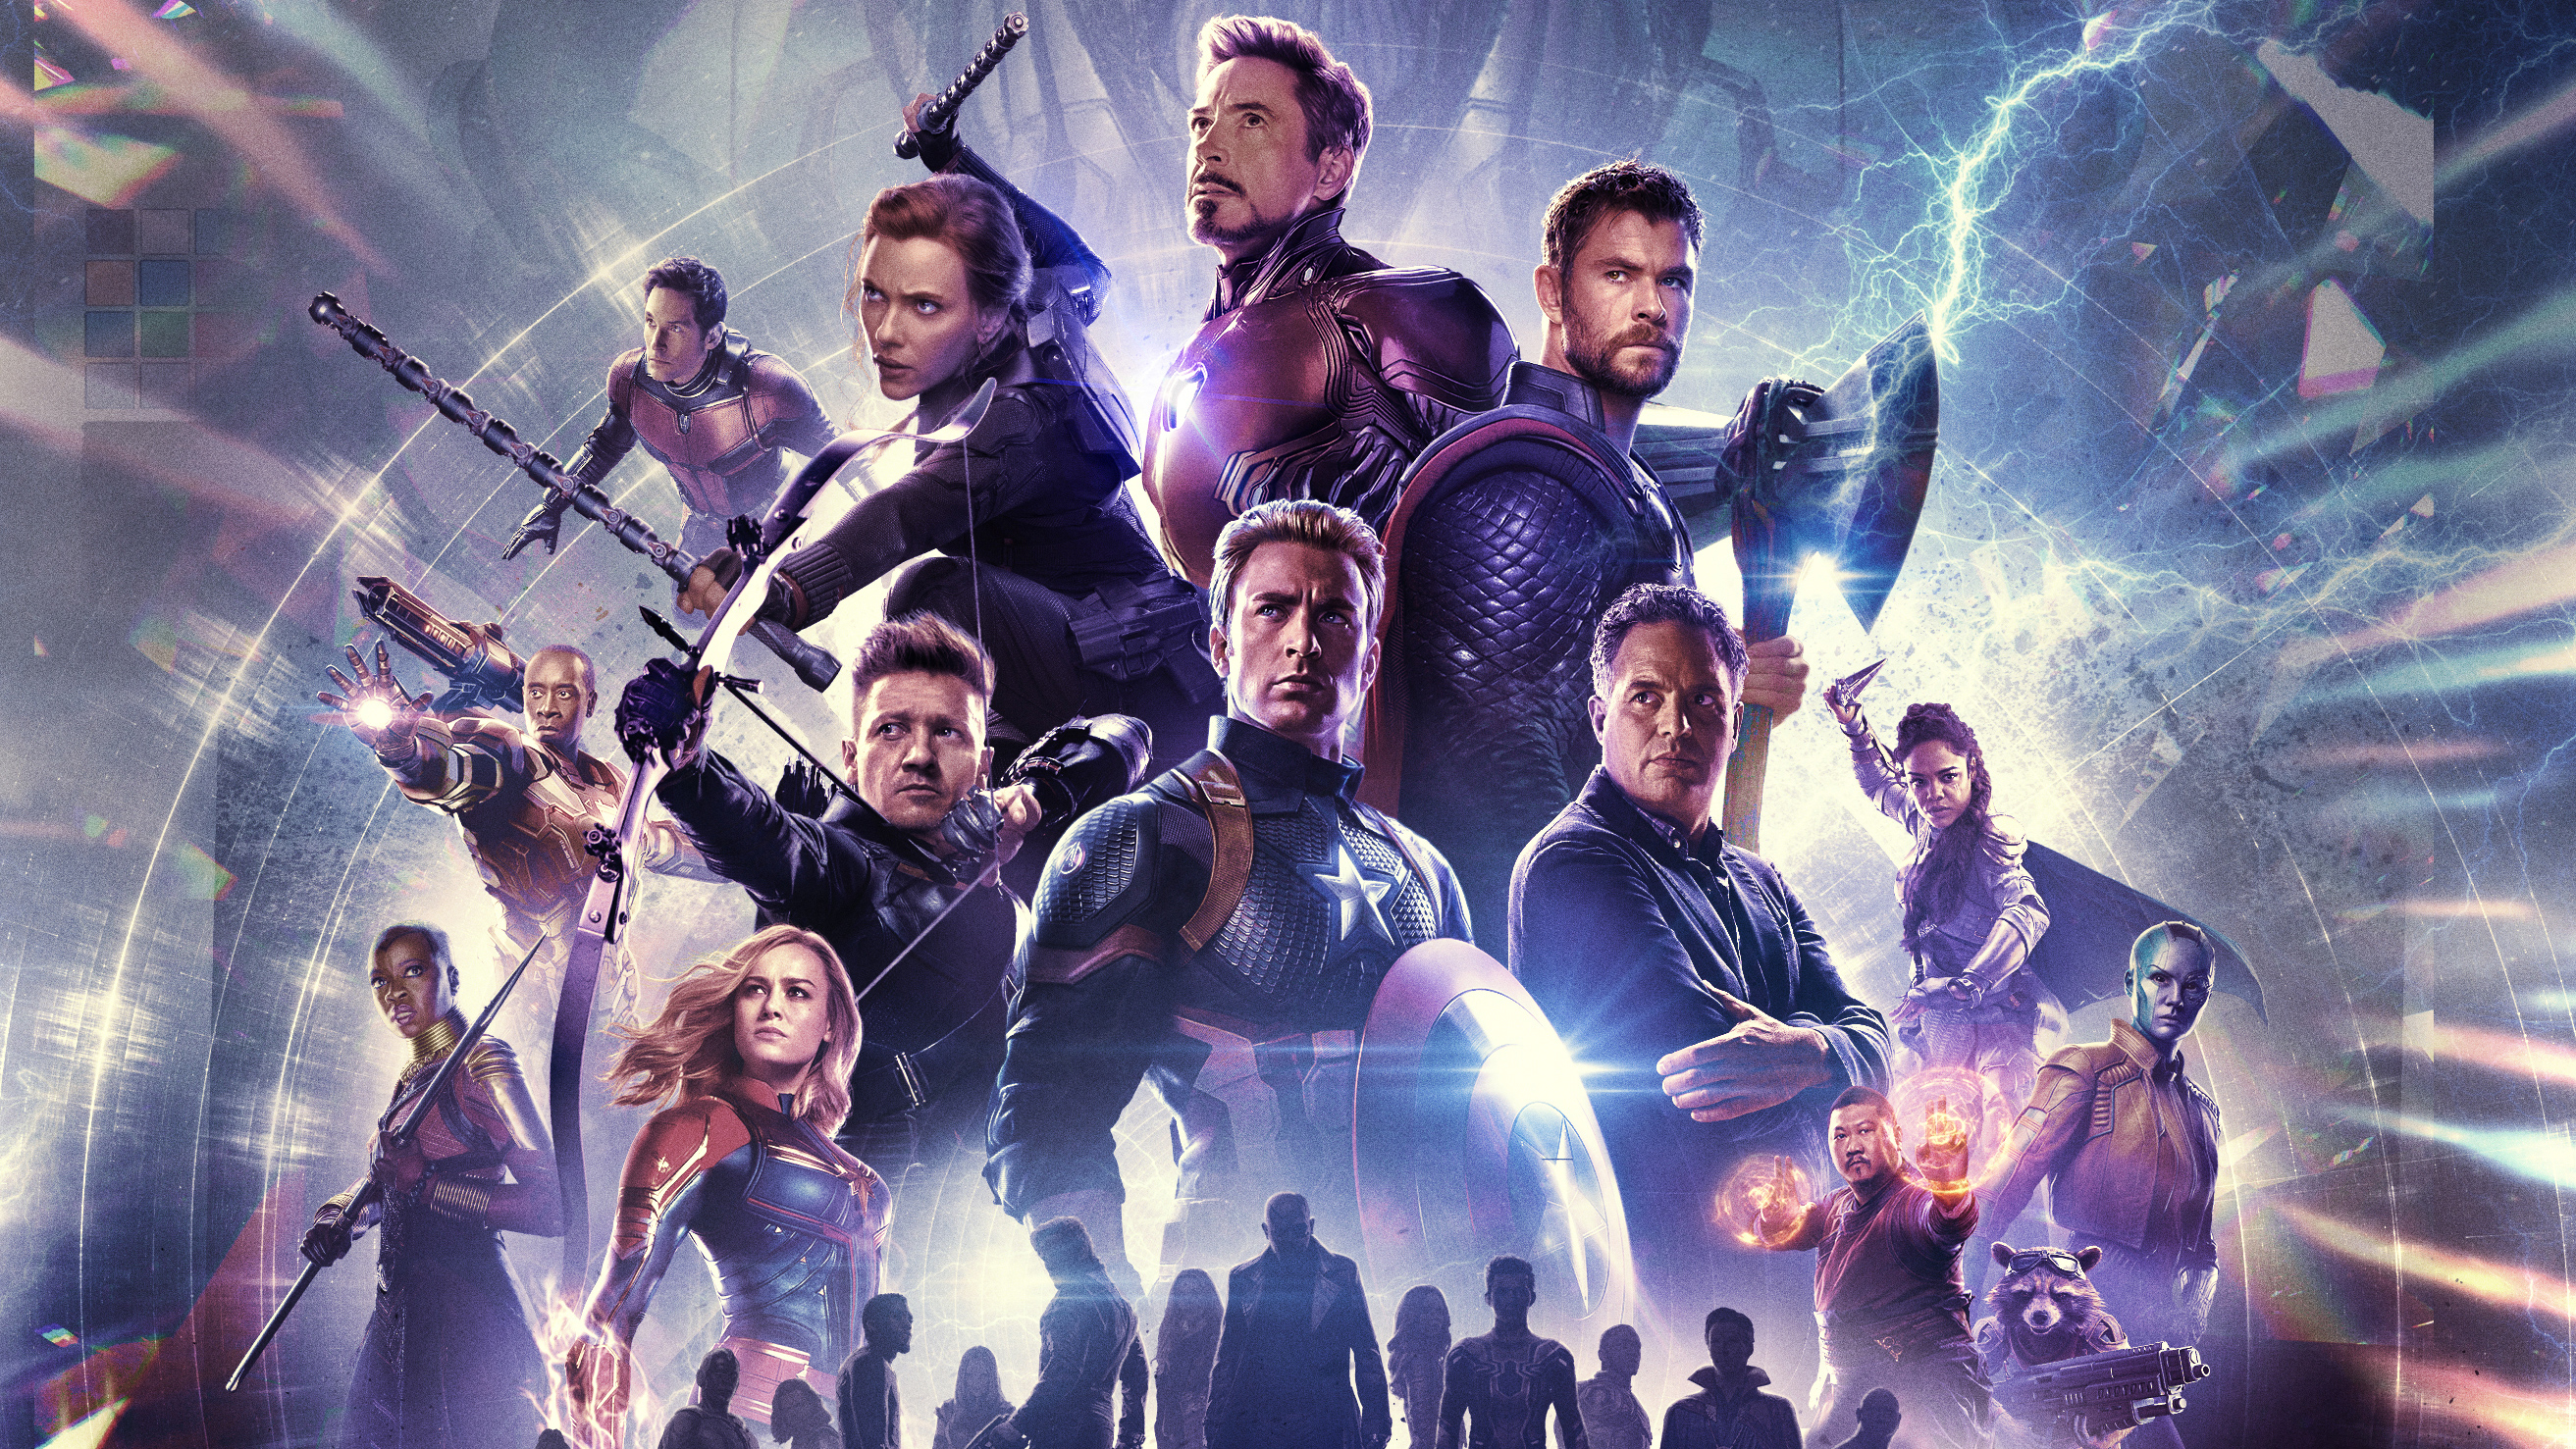 Avengers End Game New Poster Hd Movies 4k Wallpapers Images